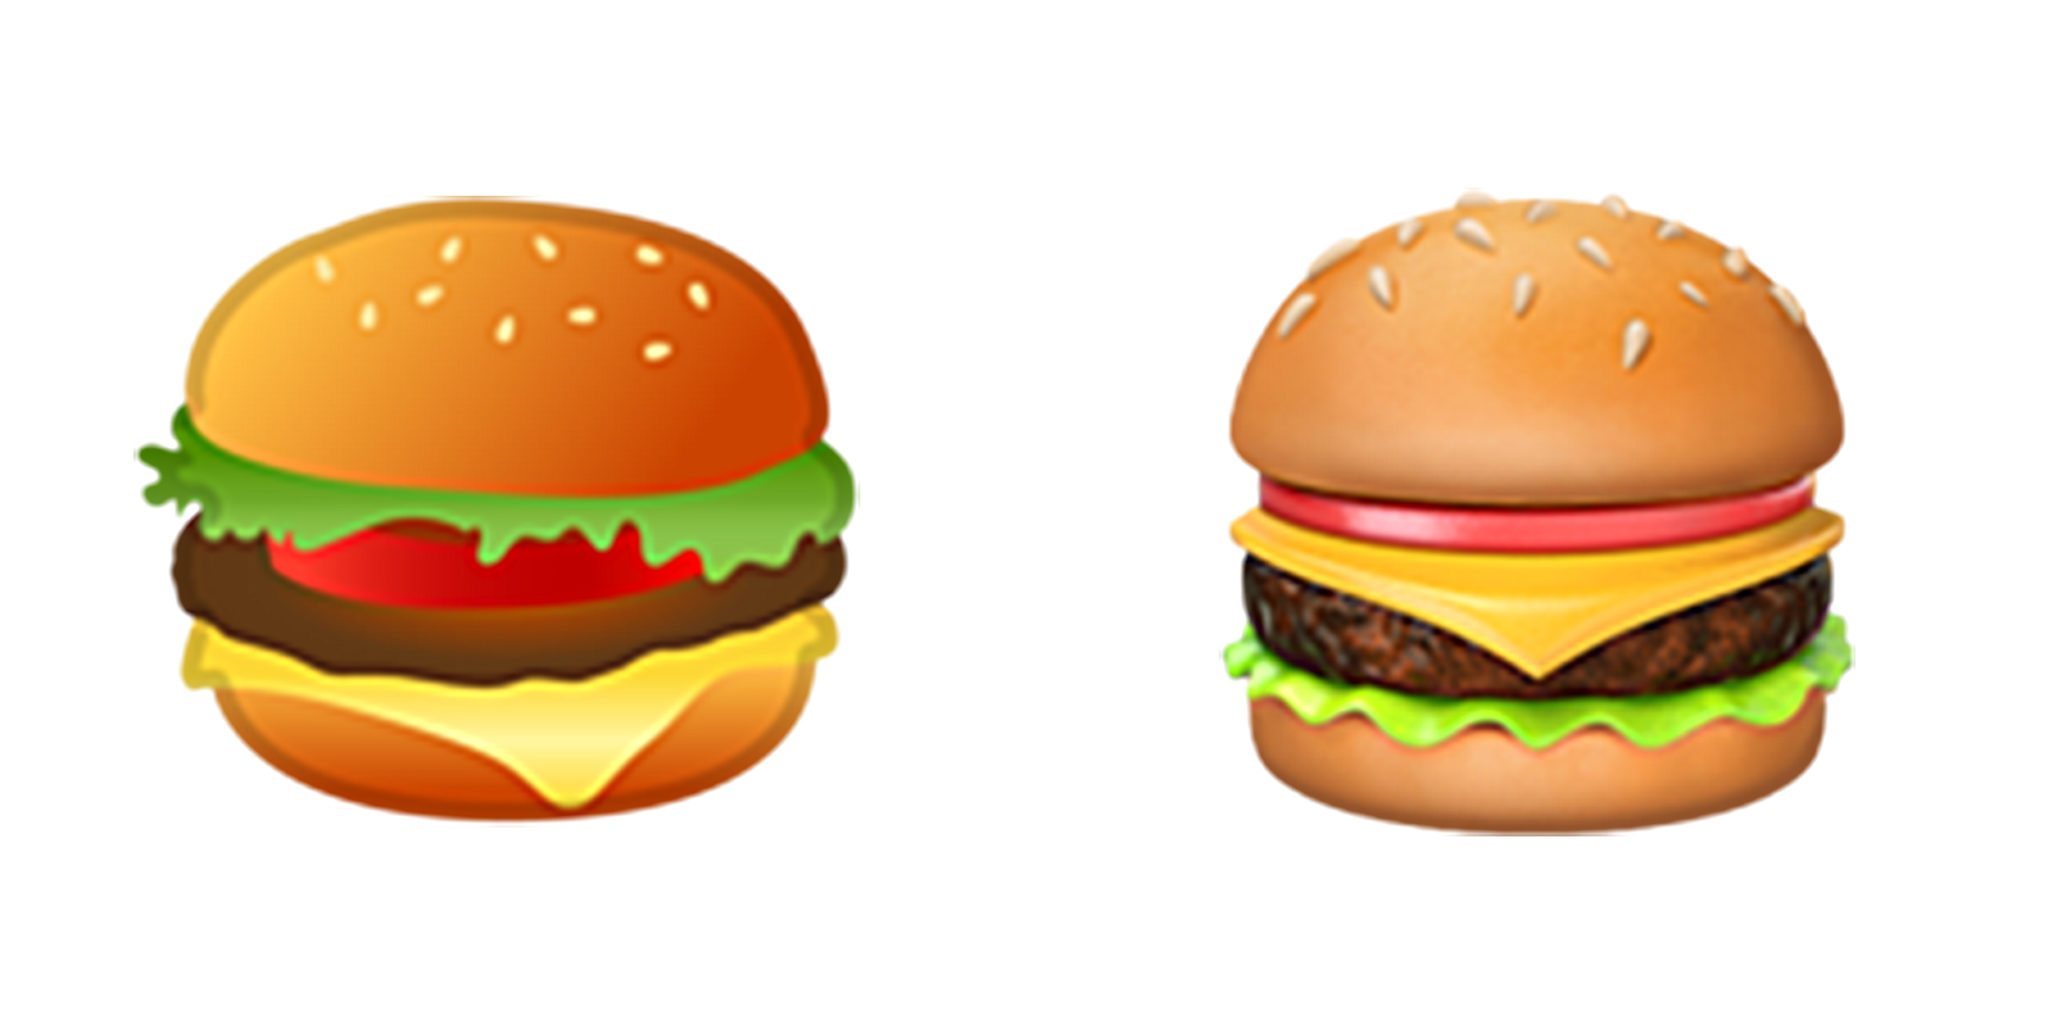 Forget Smartphones Apple And Google Are Waging A Burger